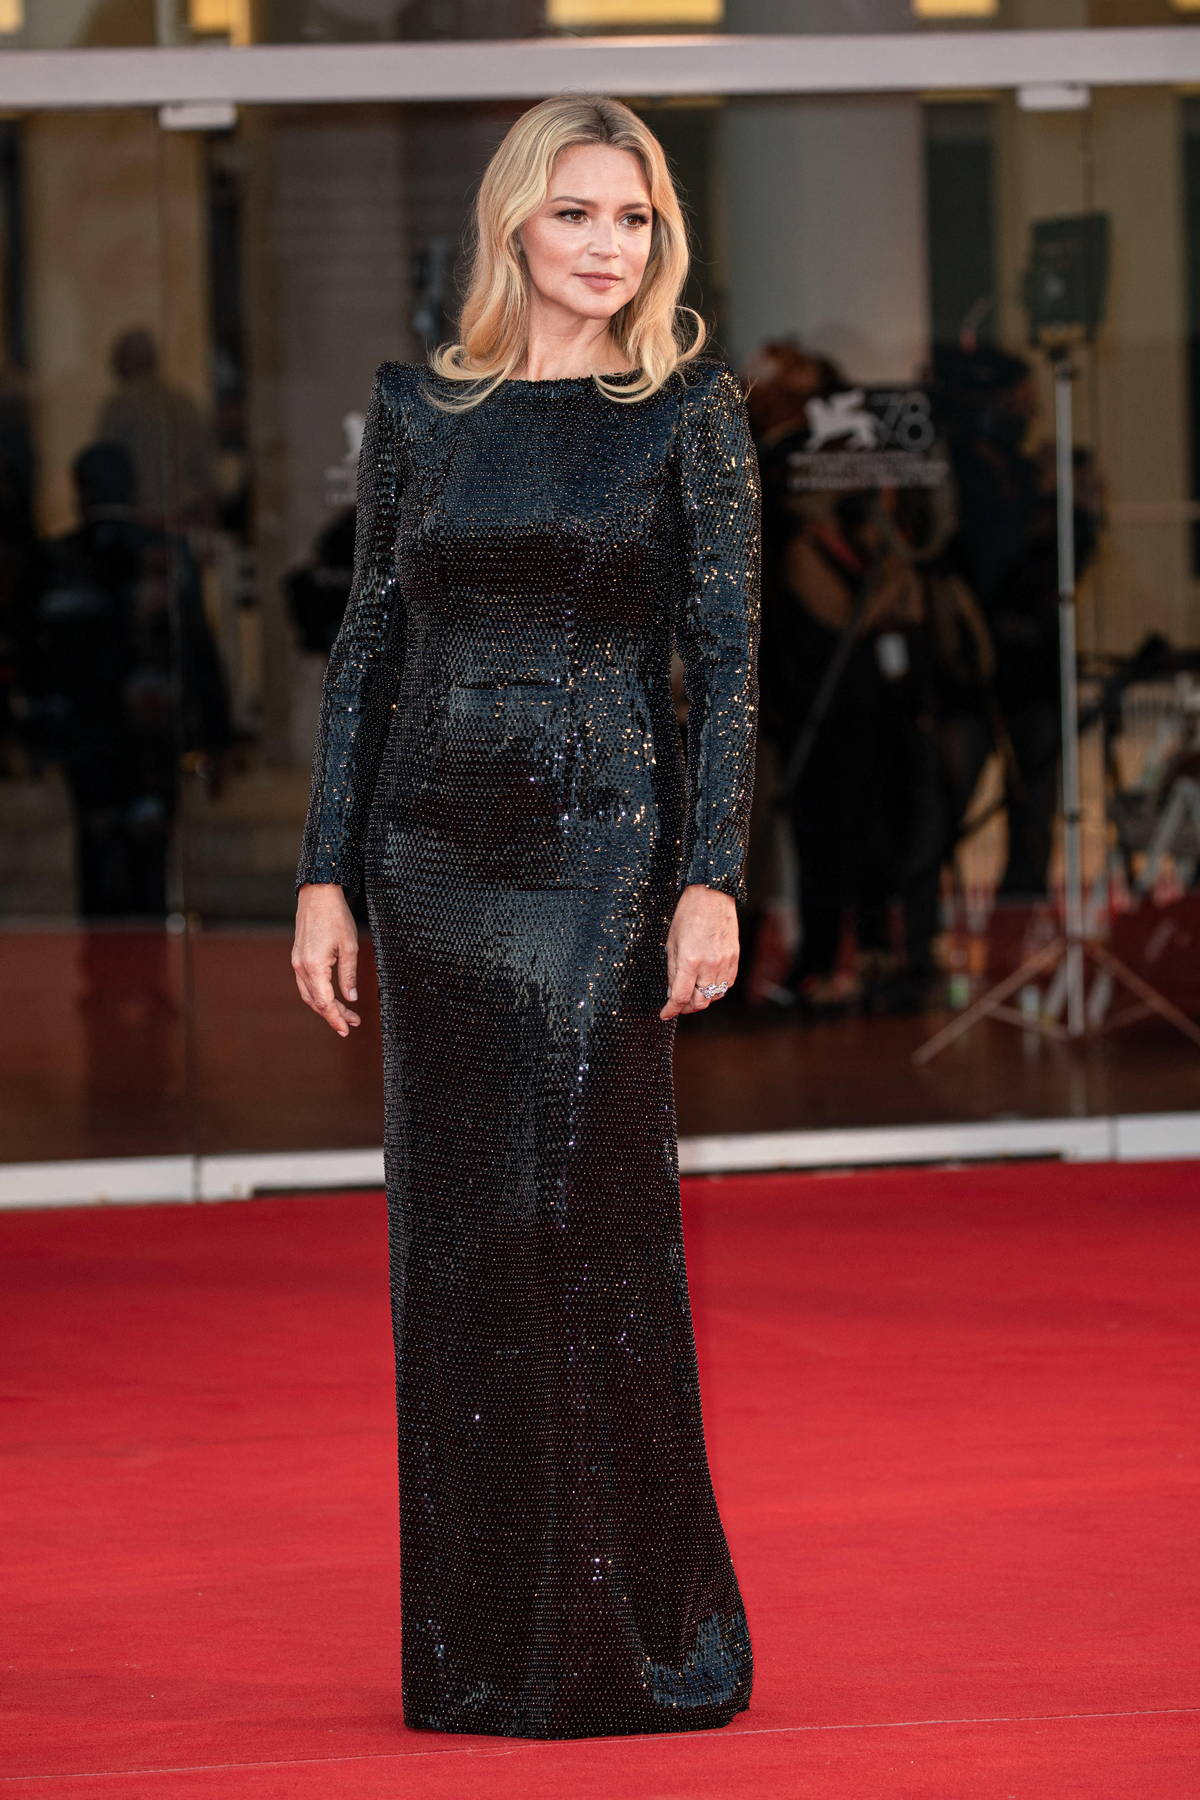 Virginie Efira attends the closing ceremony red carpet during the 78th Venice International Film Festival in Venice, Italy